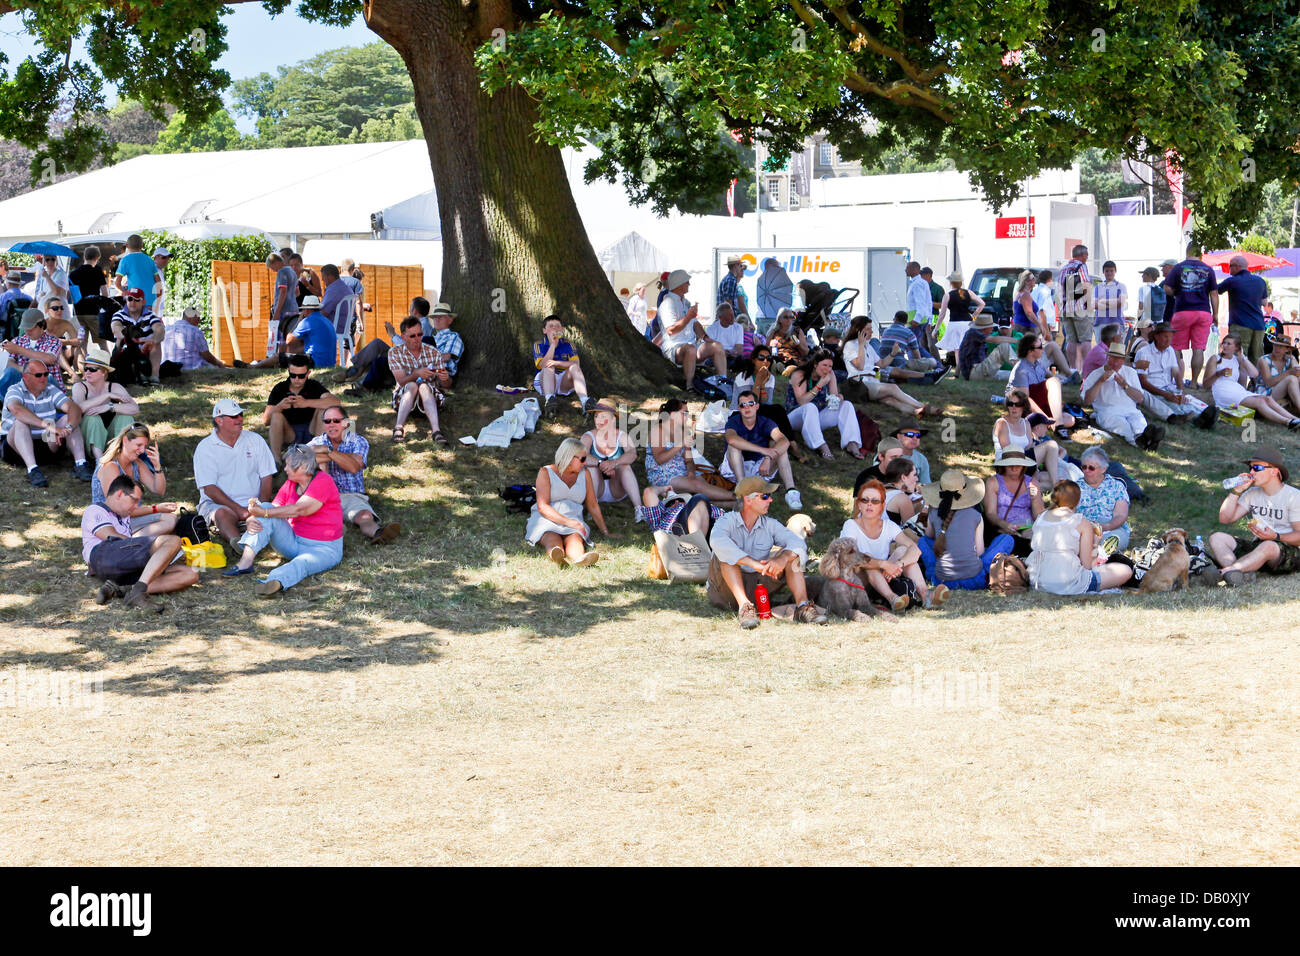 A large crowd of people sitting the shade of a large tree on a hot and sunny day Stock Photo